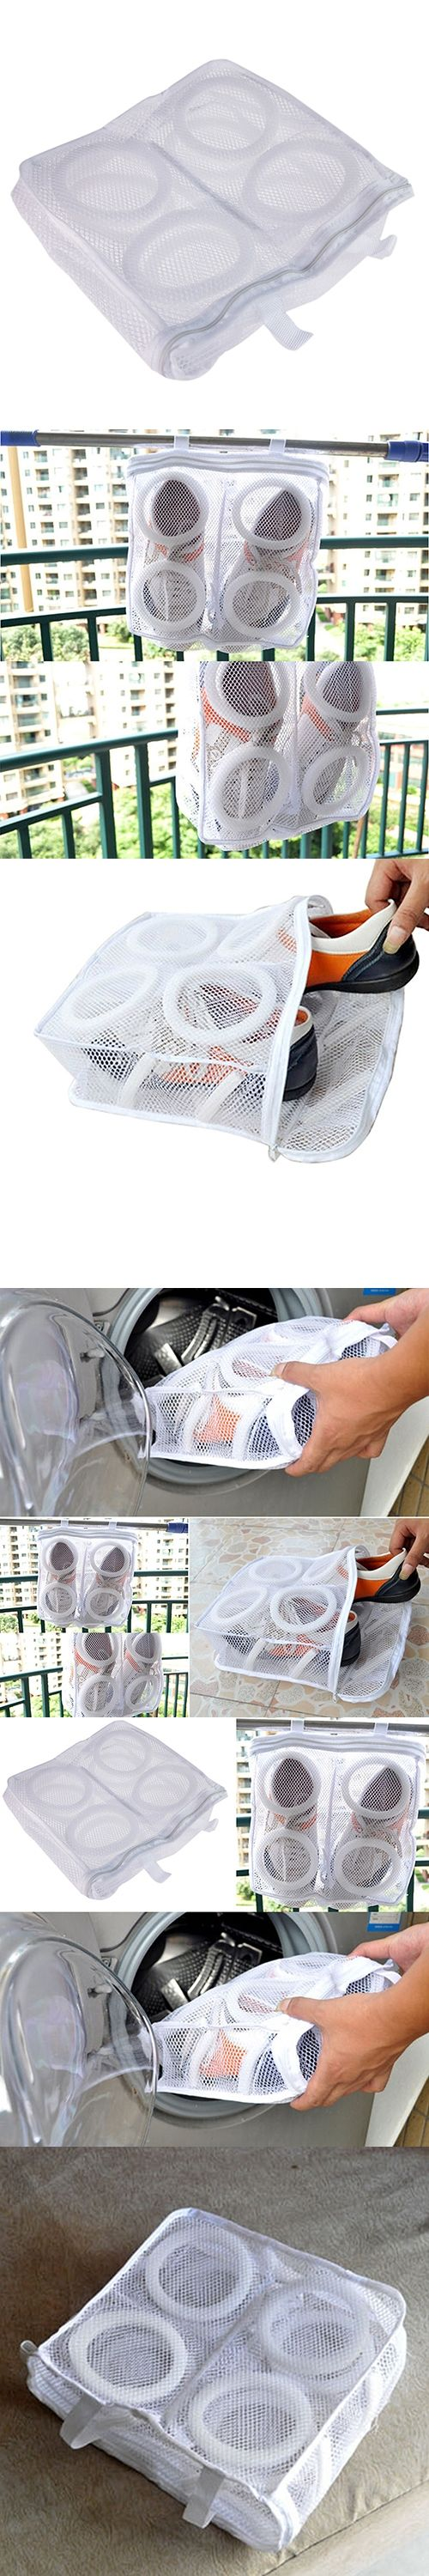 Sneaker Tennis Boots Sports Shoes Mesh Laundry Washing Bag Household Essentials Storage Holders & Racks